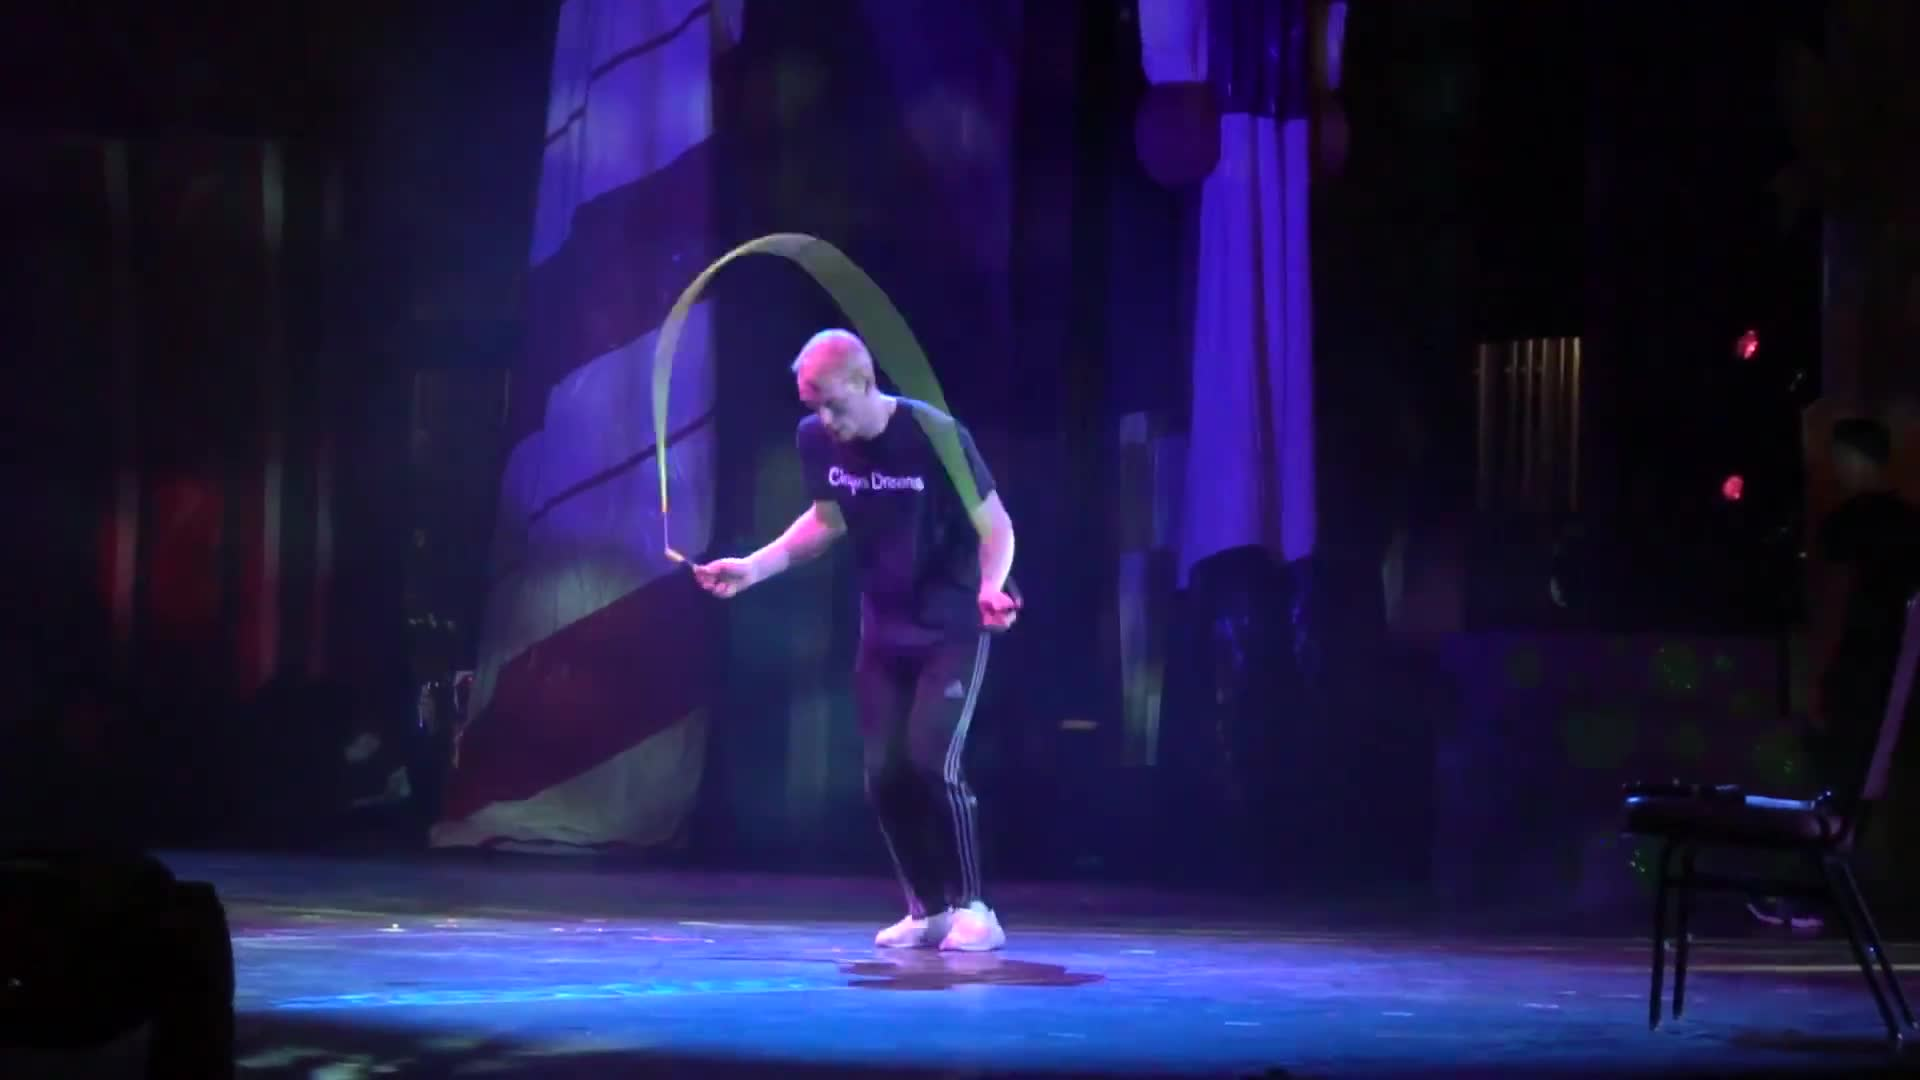 Film & Animation, WeJumpRope Music Videos, cirque dreams, double dutch, jump rope, wejumprope, November 2018 - Cirque, Laughing, and Scaring Billy GIFs